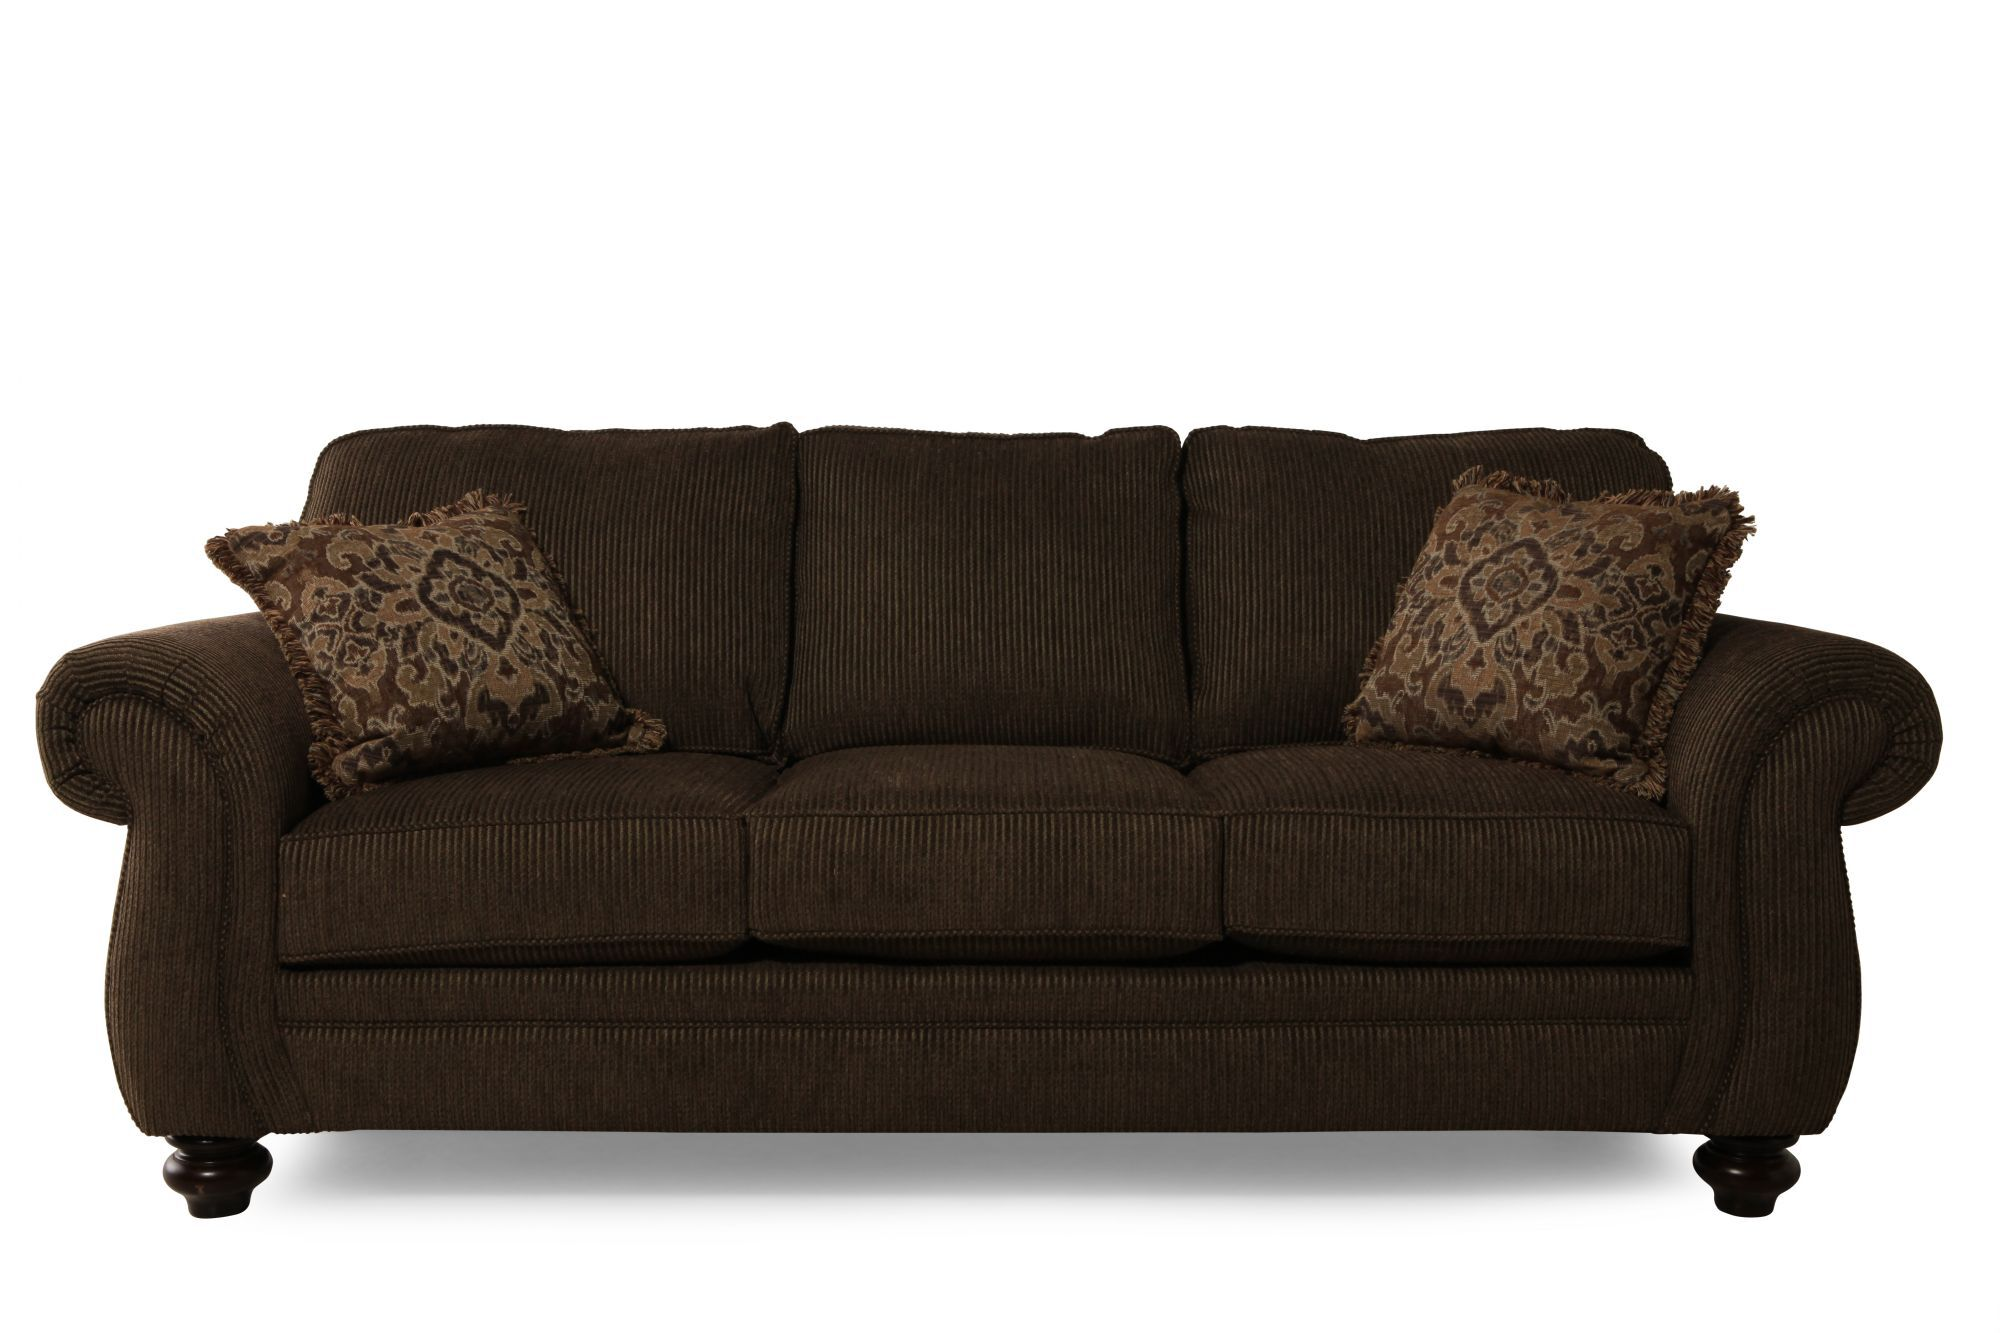 Corduroy 3 Seater Sofa Brown Corduroy Sofa Home Decor 88